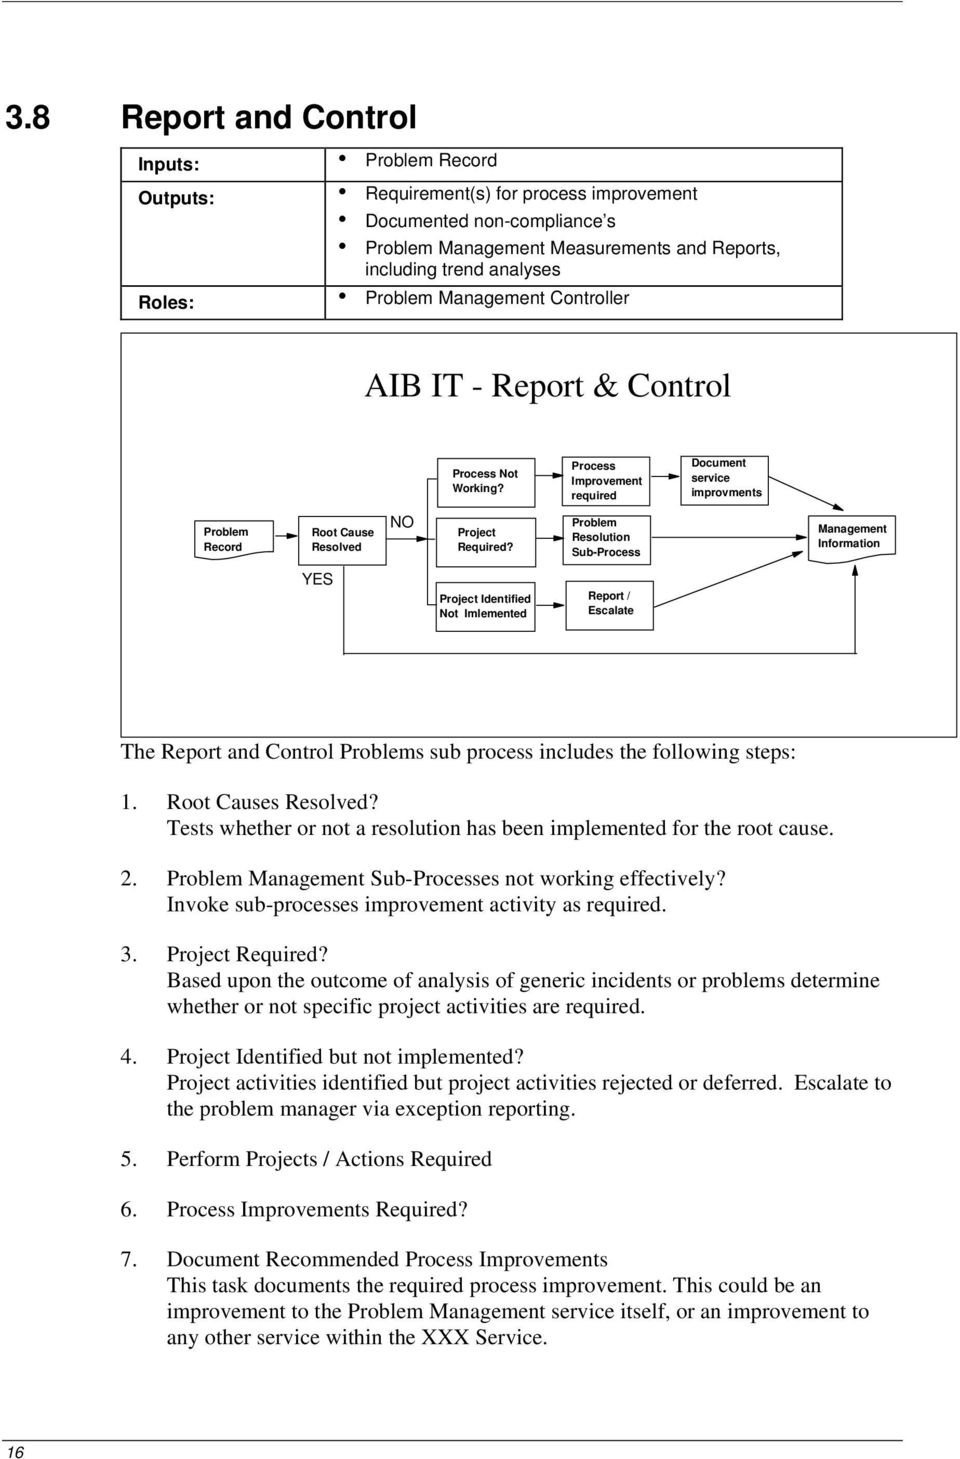 Resolution Sub-Process Management Information YES Project Identified Not Imlemented Report / Escalate The Report and Control s sub process includes the folloing steps: 1. Root Causes Resolved?